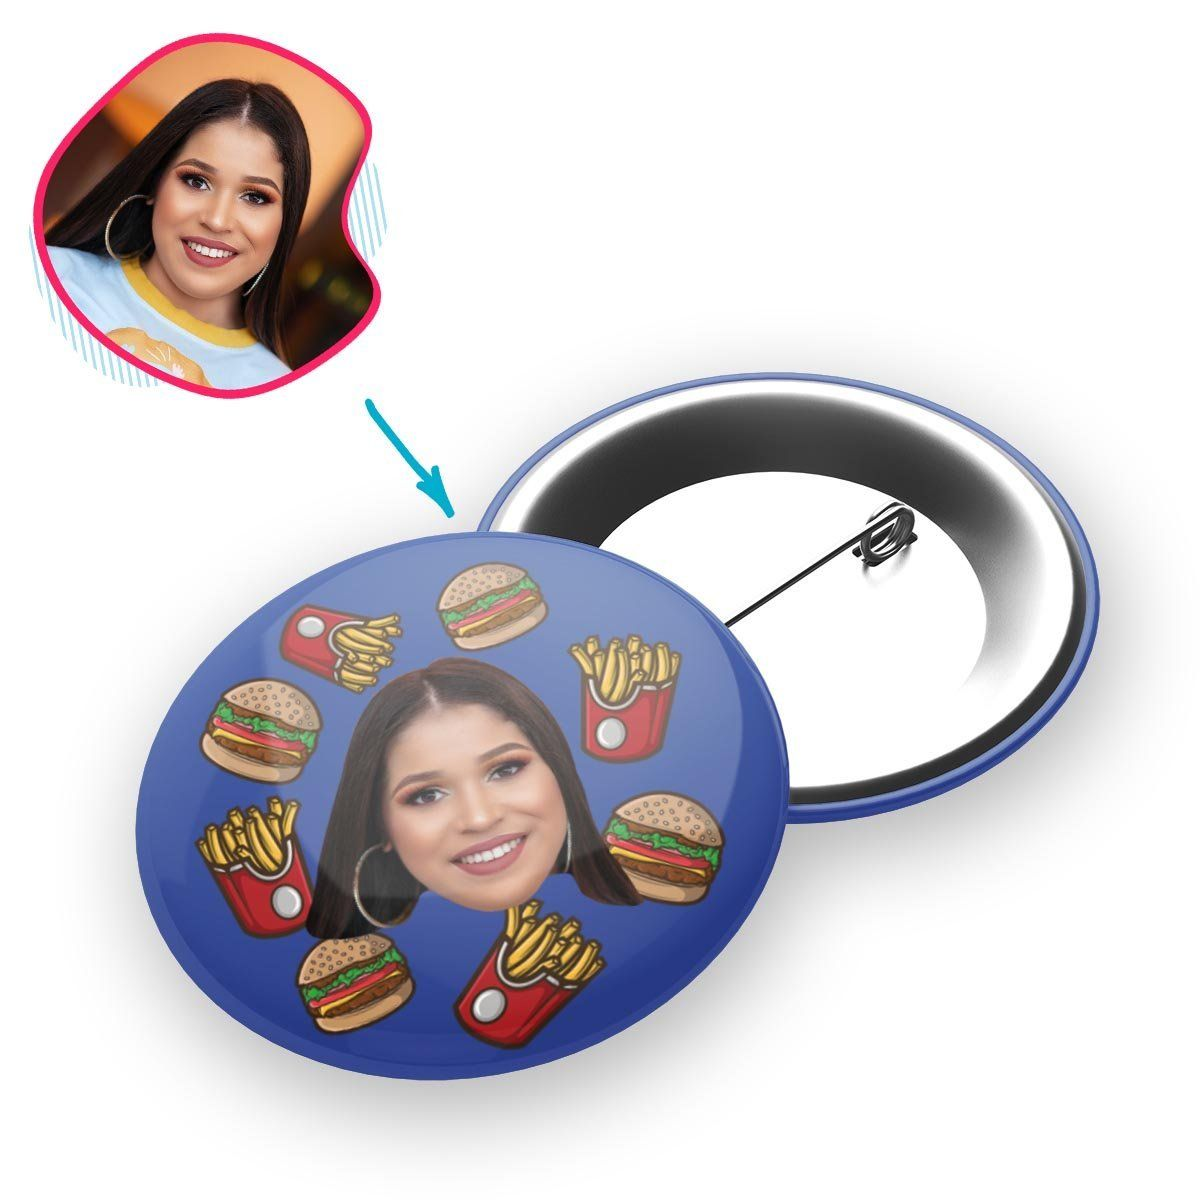 darkblue Fastfood pin personalized with photo of face printed on it